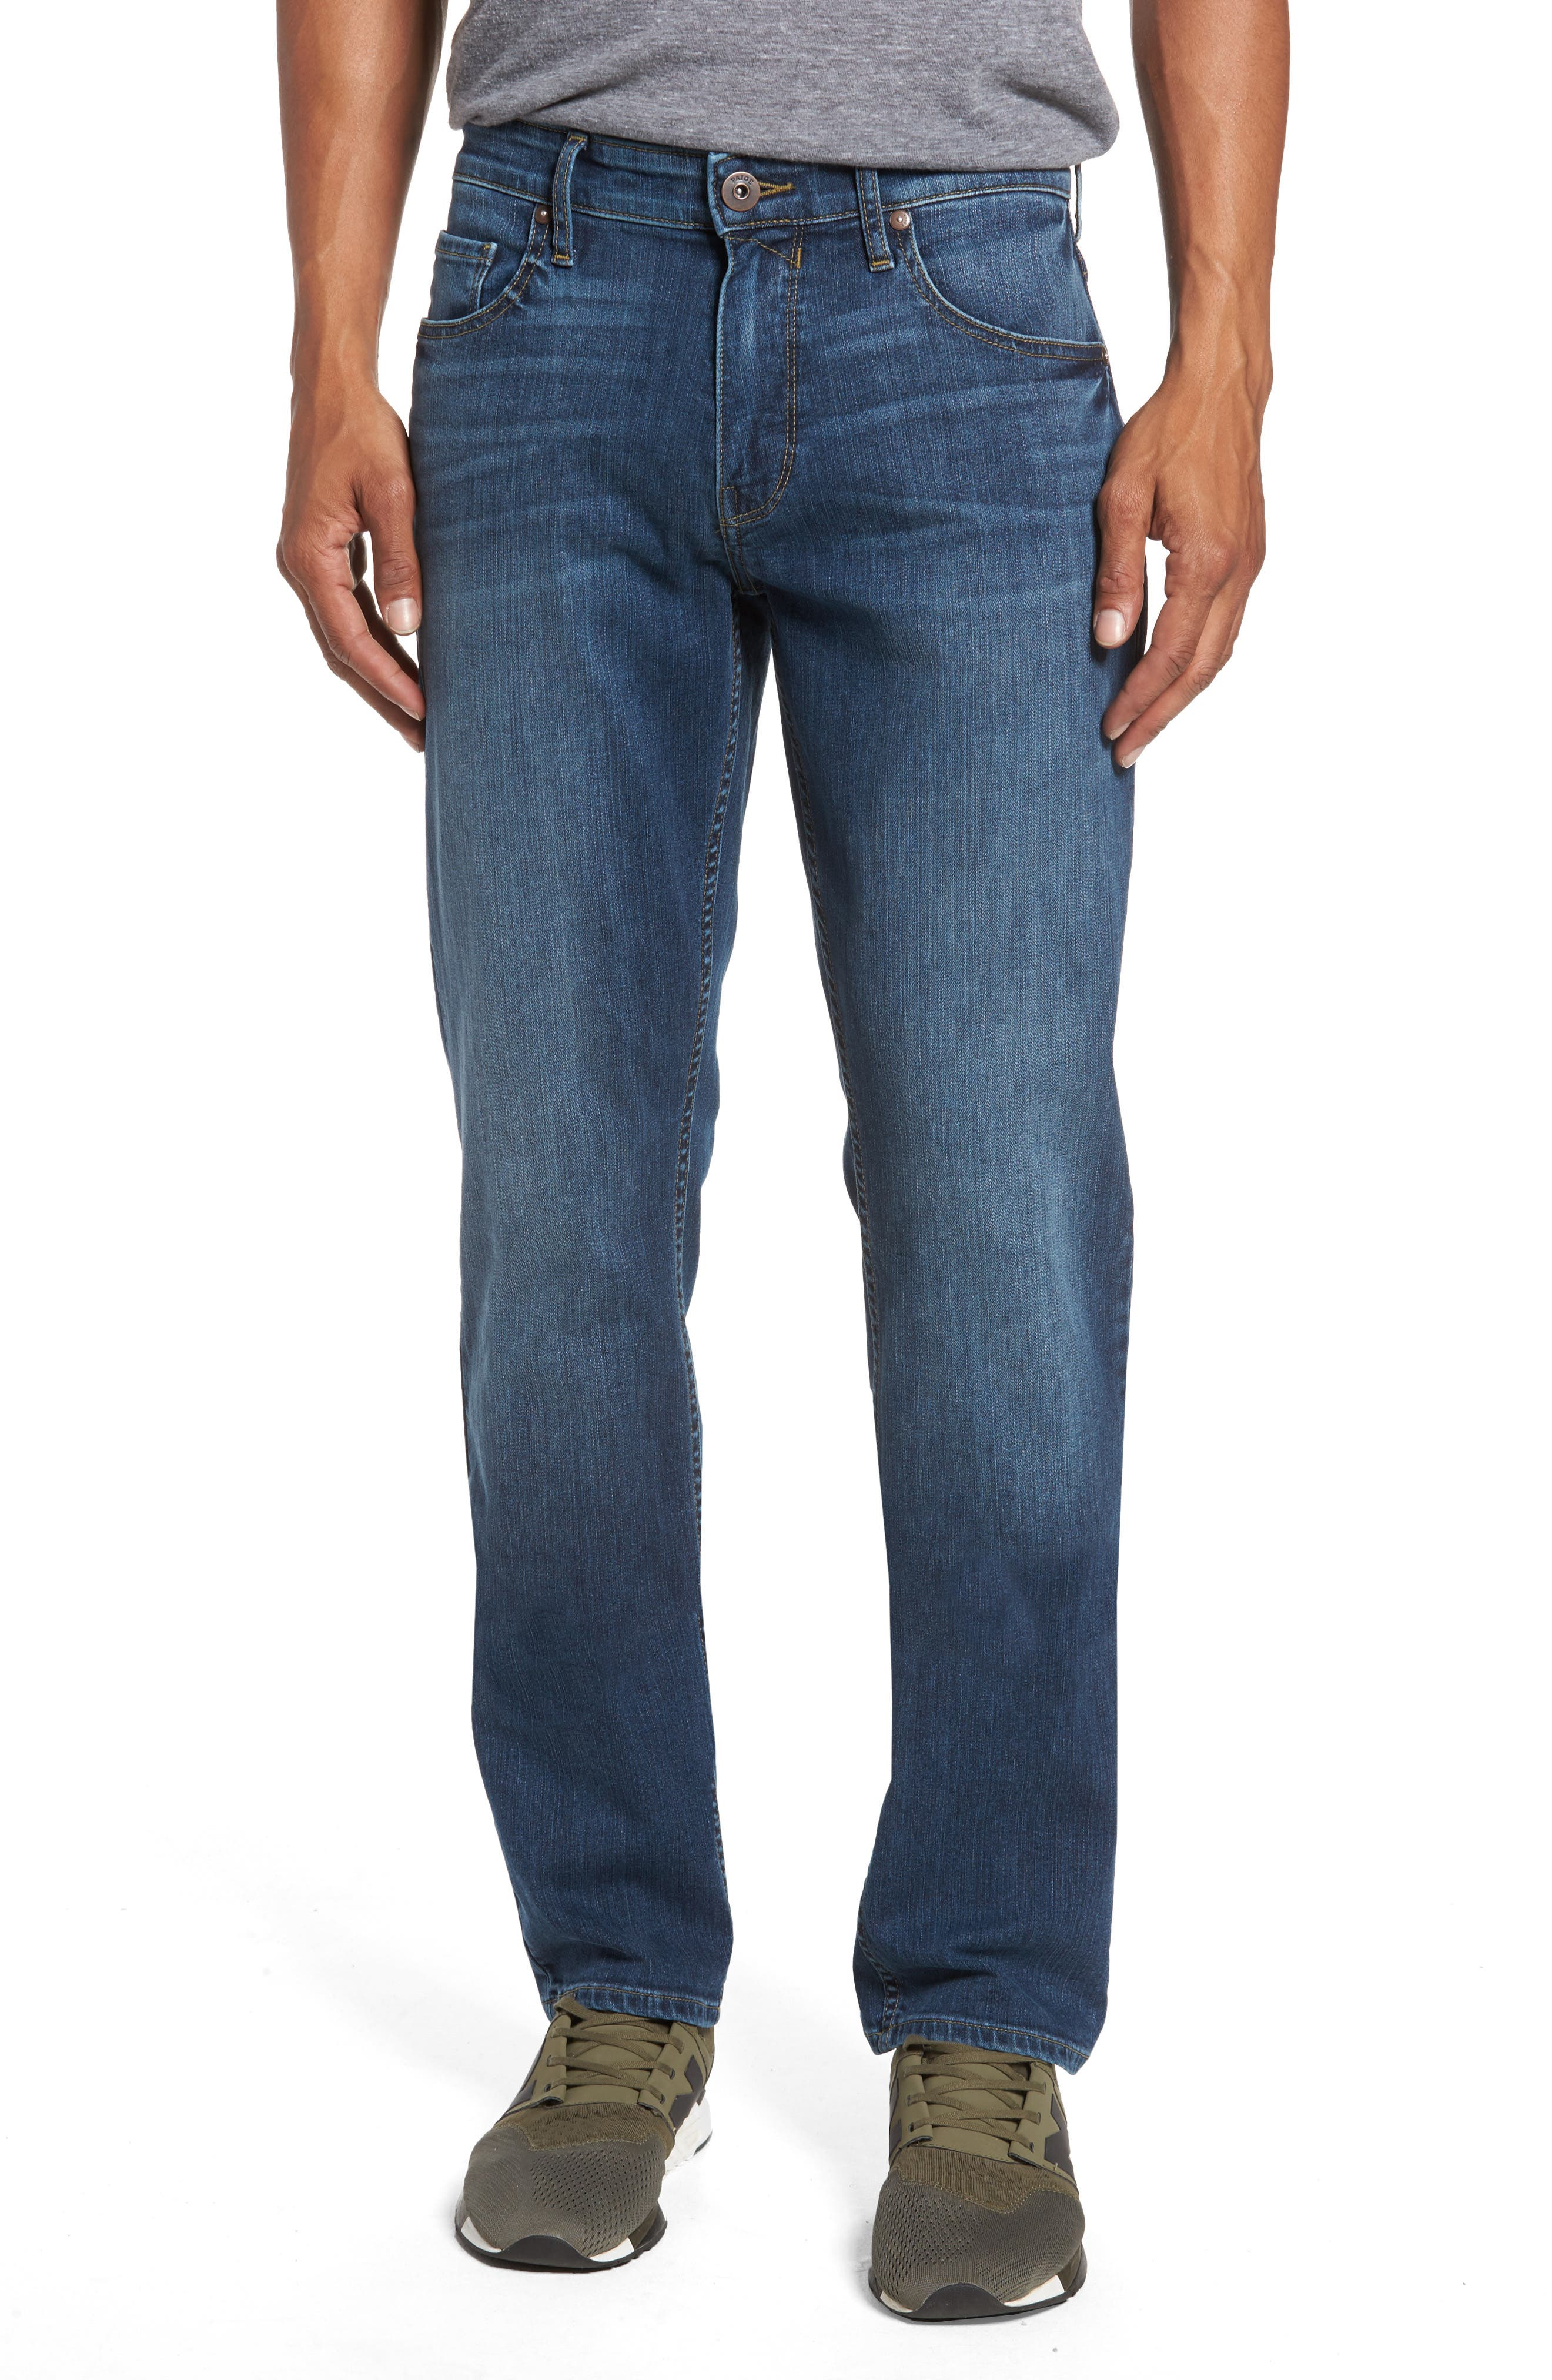 Legacy - Federal Slim Straight Fit Jeans,                             Main thumbnail 1, color,                             400